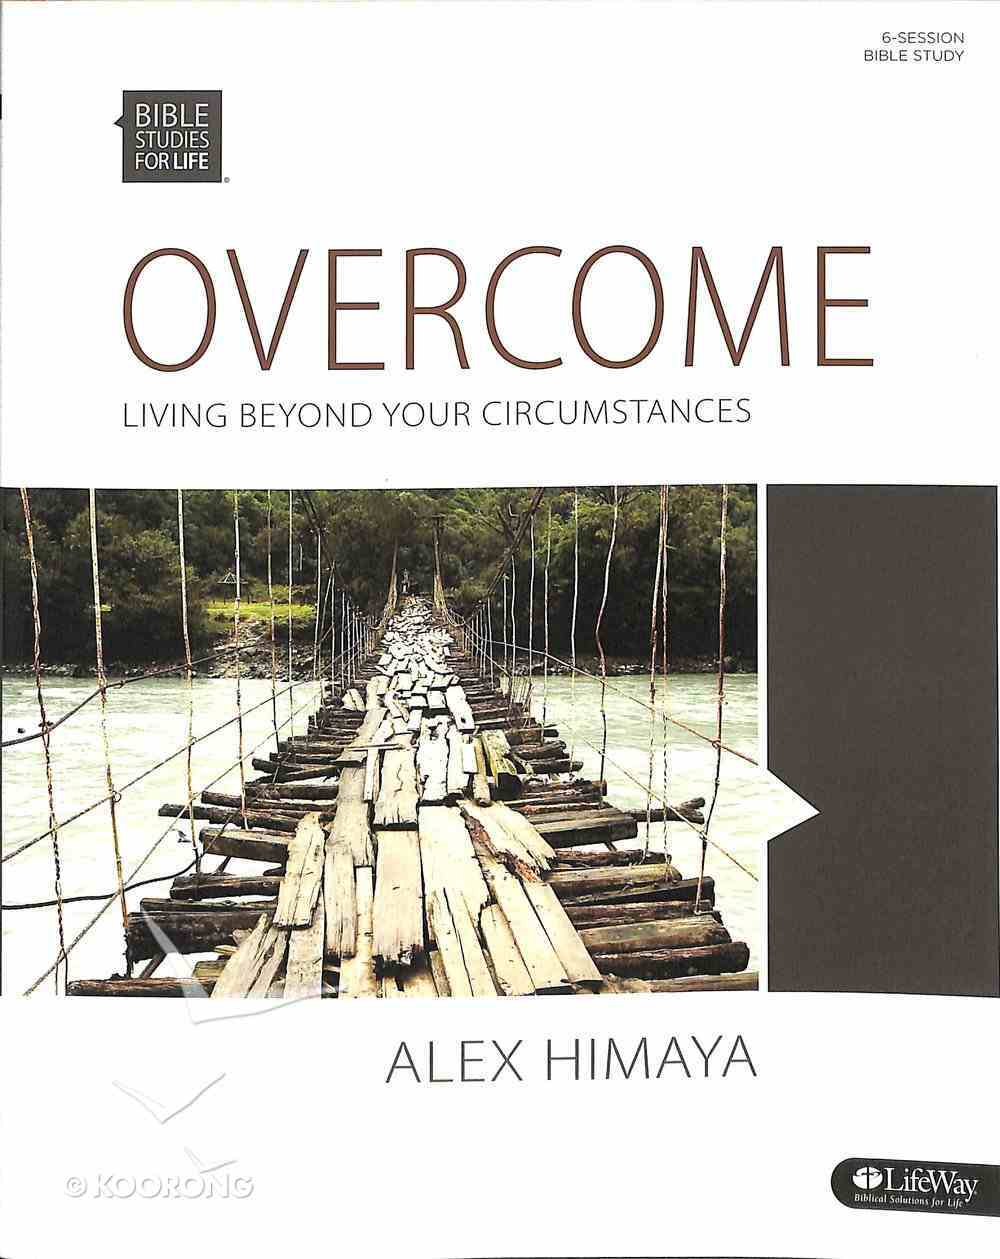 Overcome - Living Beyond Your Circumstances (Member Book) (Bible Studies For Life Series) Paperback